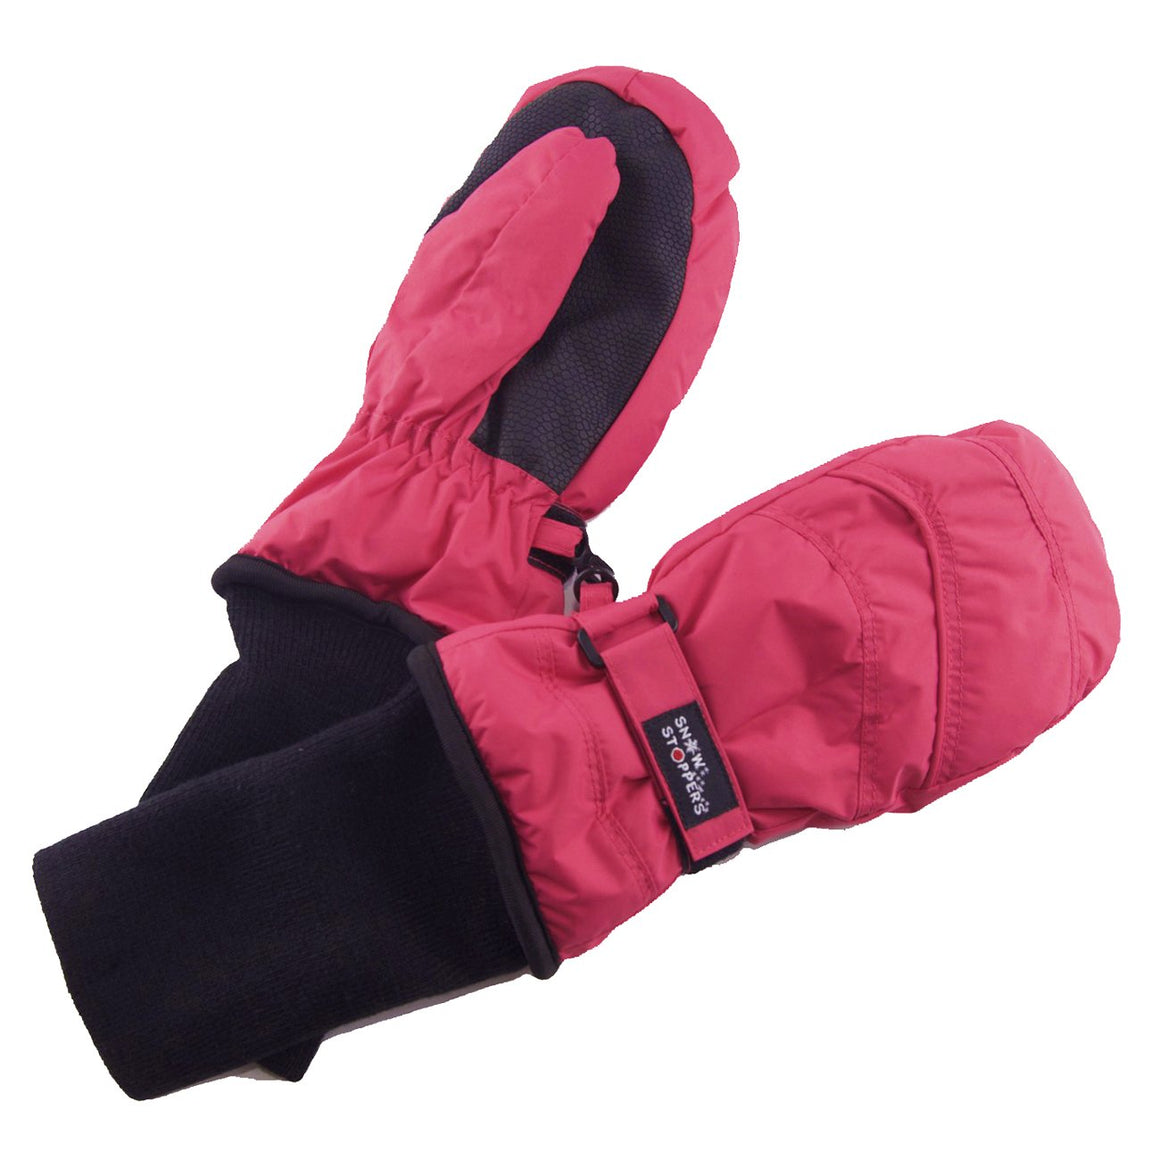 Stay-On mittens, size small - X-large in the color black